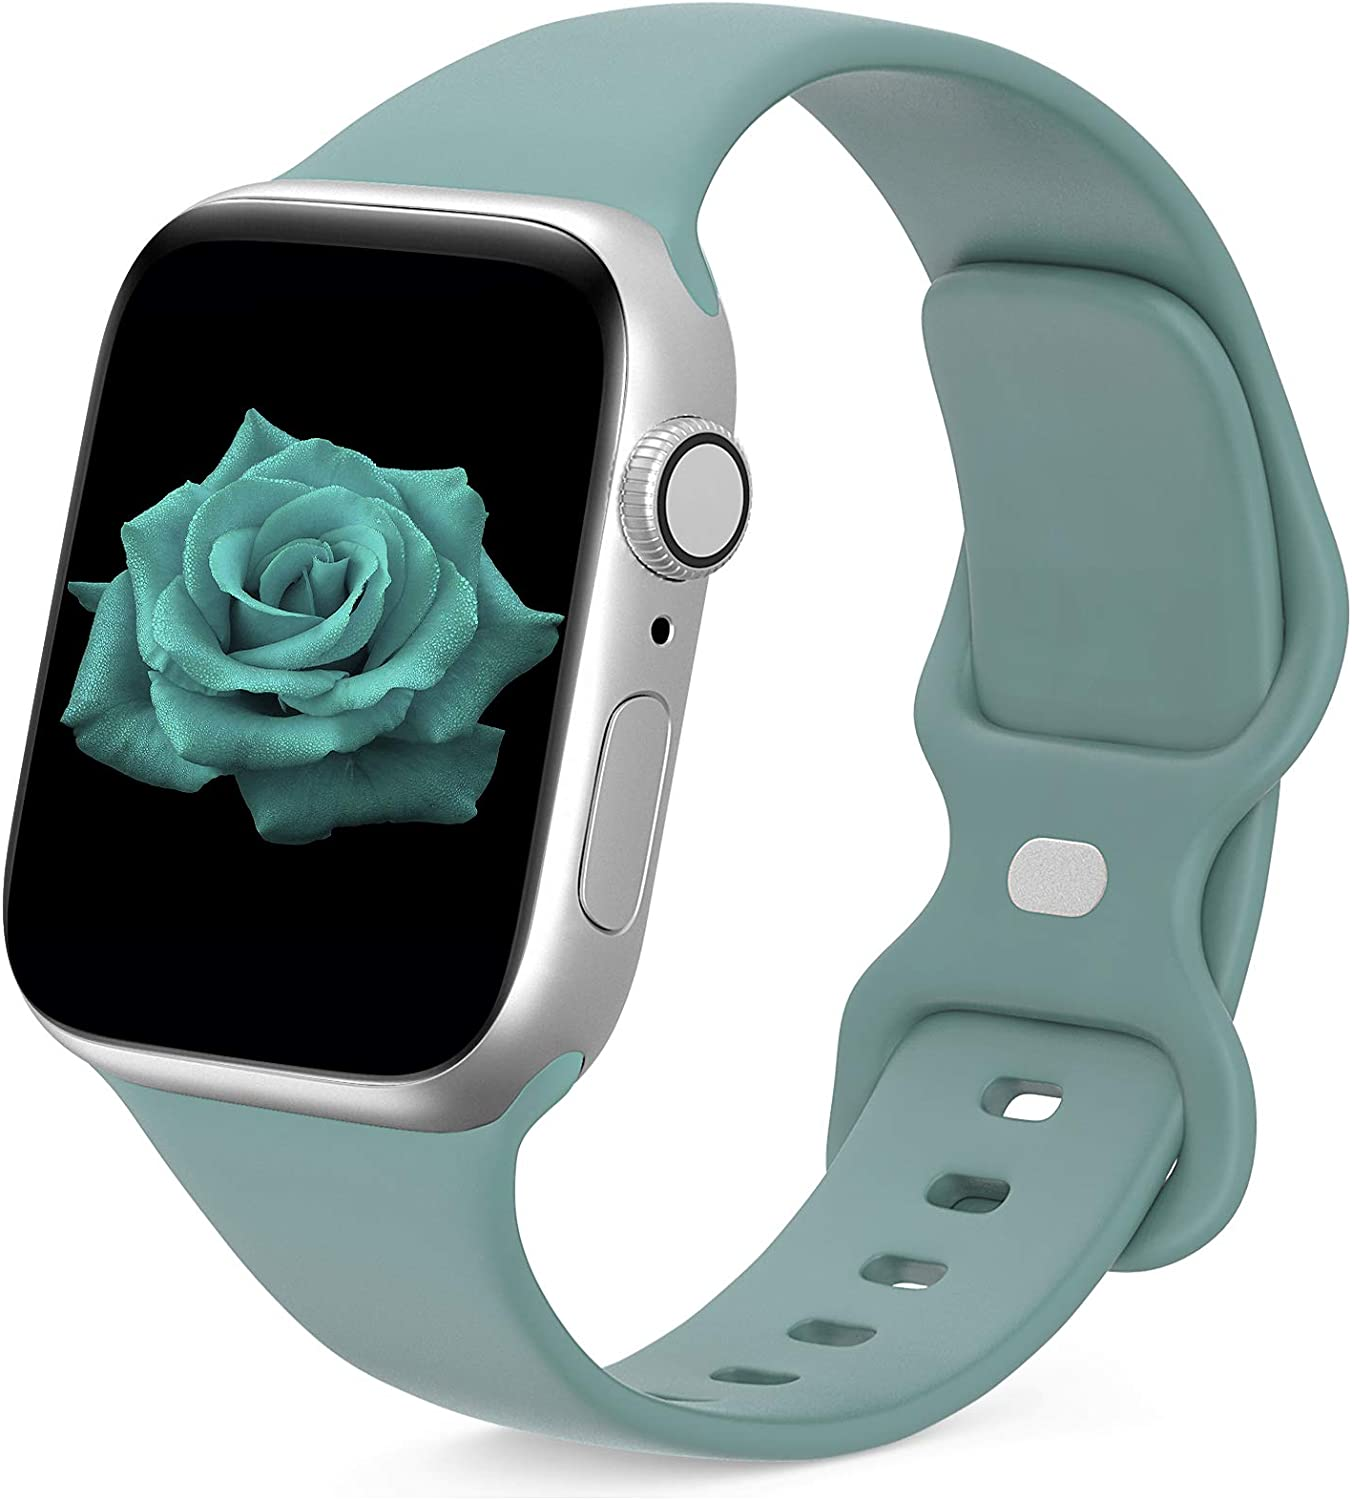 JINGMAX Sport Band Compatible with Apple Watch Band 38mm 40mm for Women Men, Soft Silicone Strap Replacement Wristband for iwatch Series SE/6/5/4/3/2/1 (for 38mm/40mm Cactus)